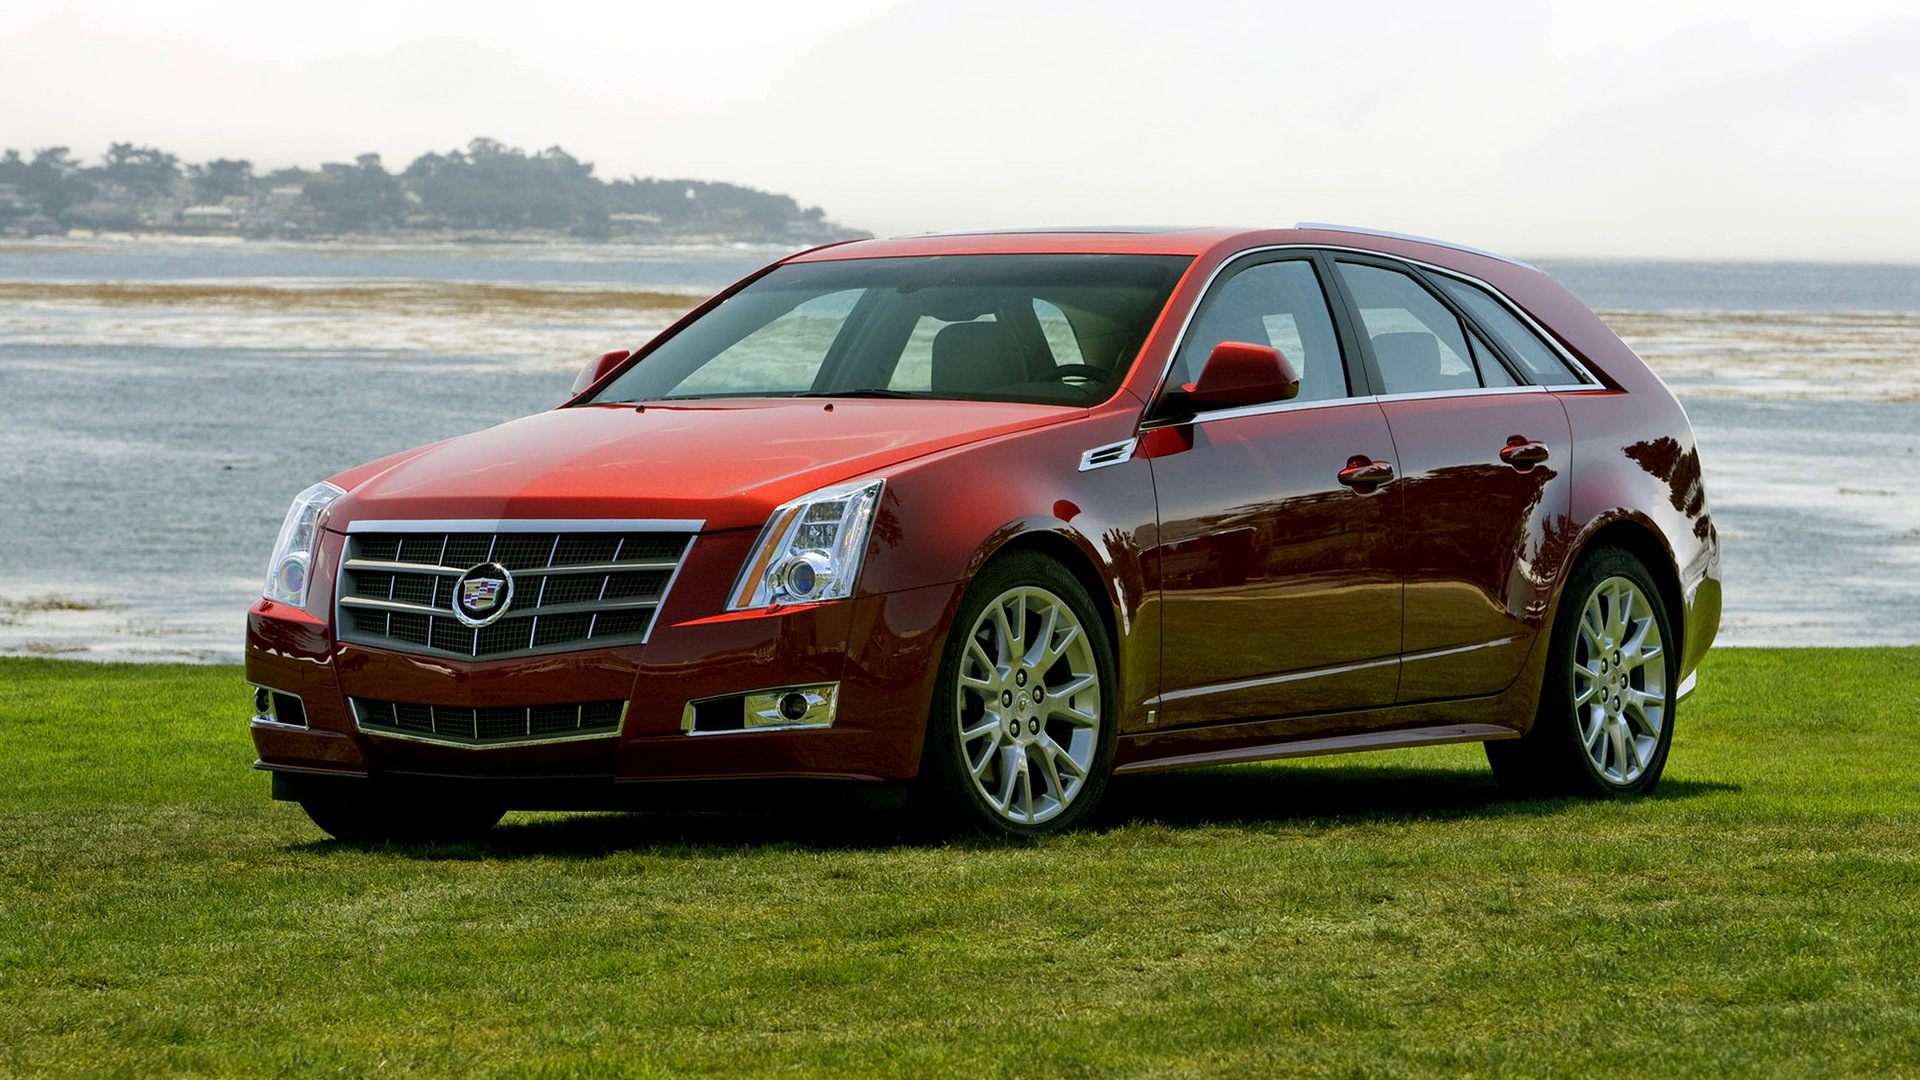 2009 Cadillac Cts Sport Wagon Wallpapers And Hd Images